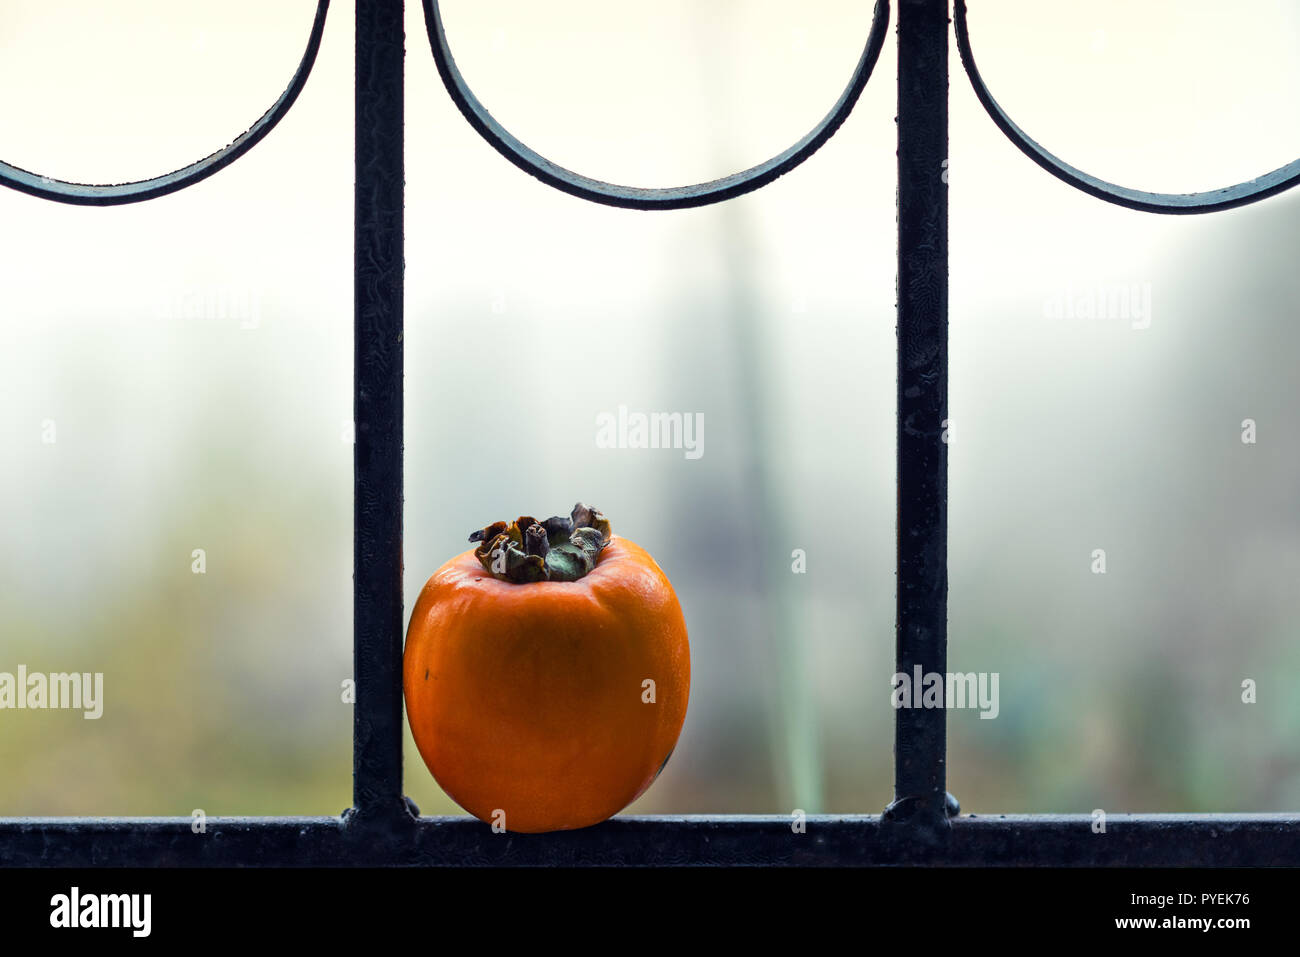 Ripe lonely persimmon fruit on the window - Stock Image